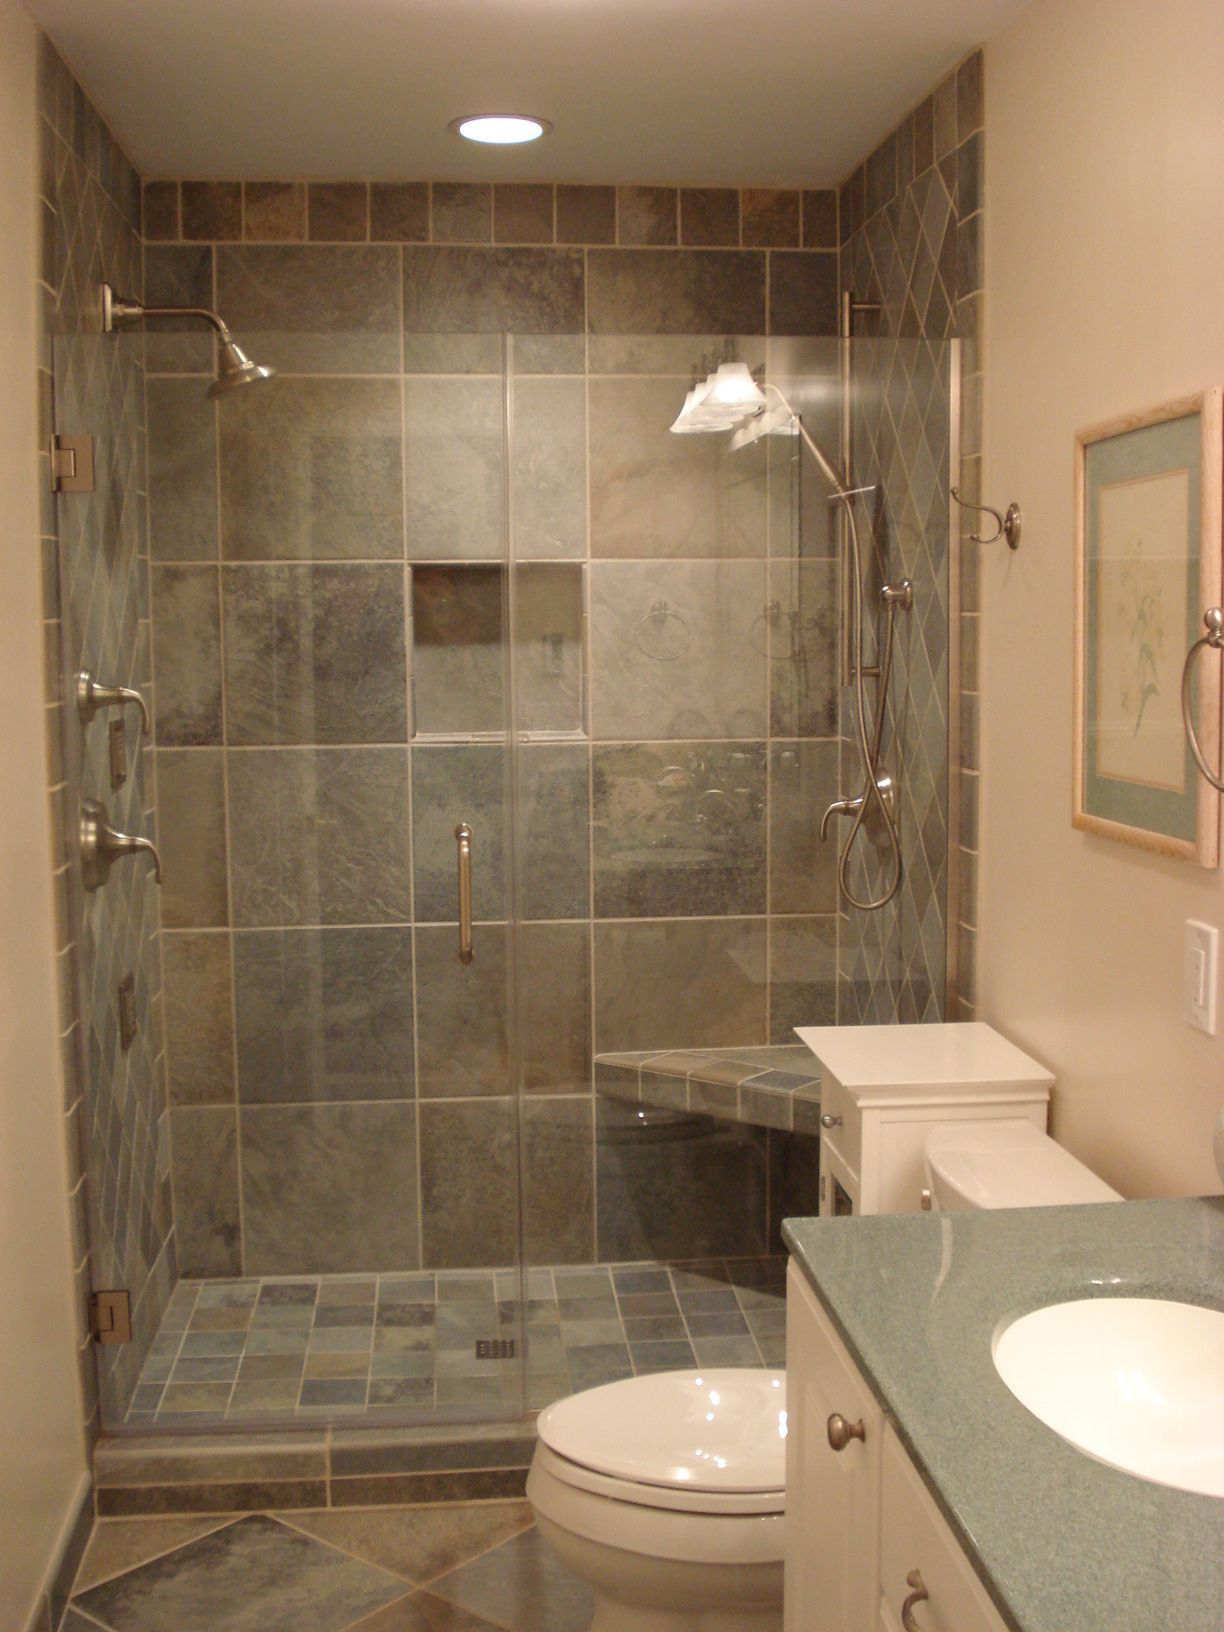 Bathroom Bathroom And Shower Remodel Ideas Tricks For A Limited